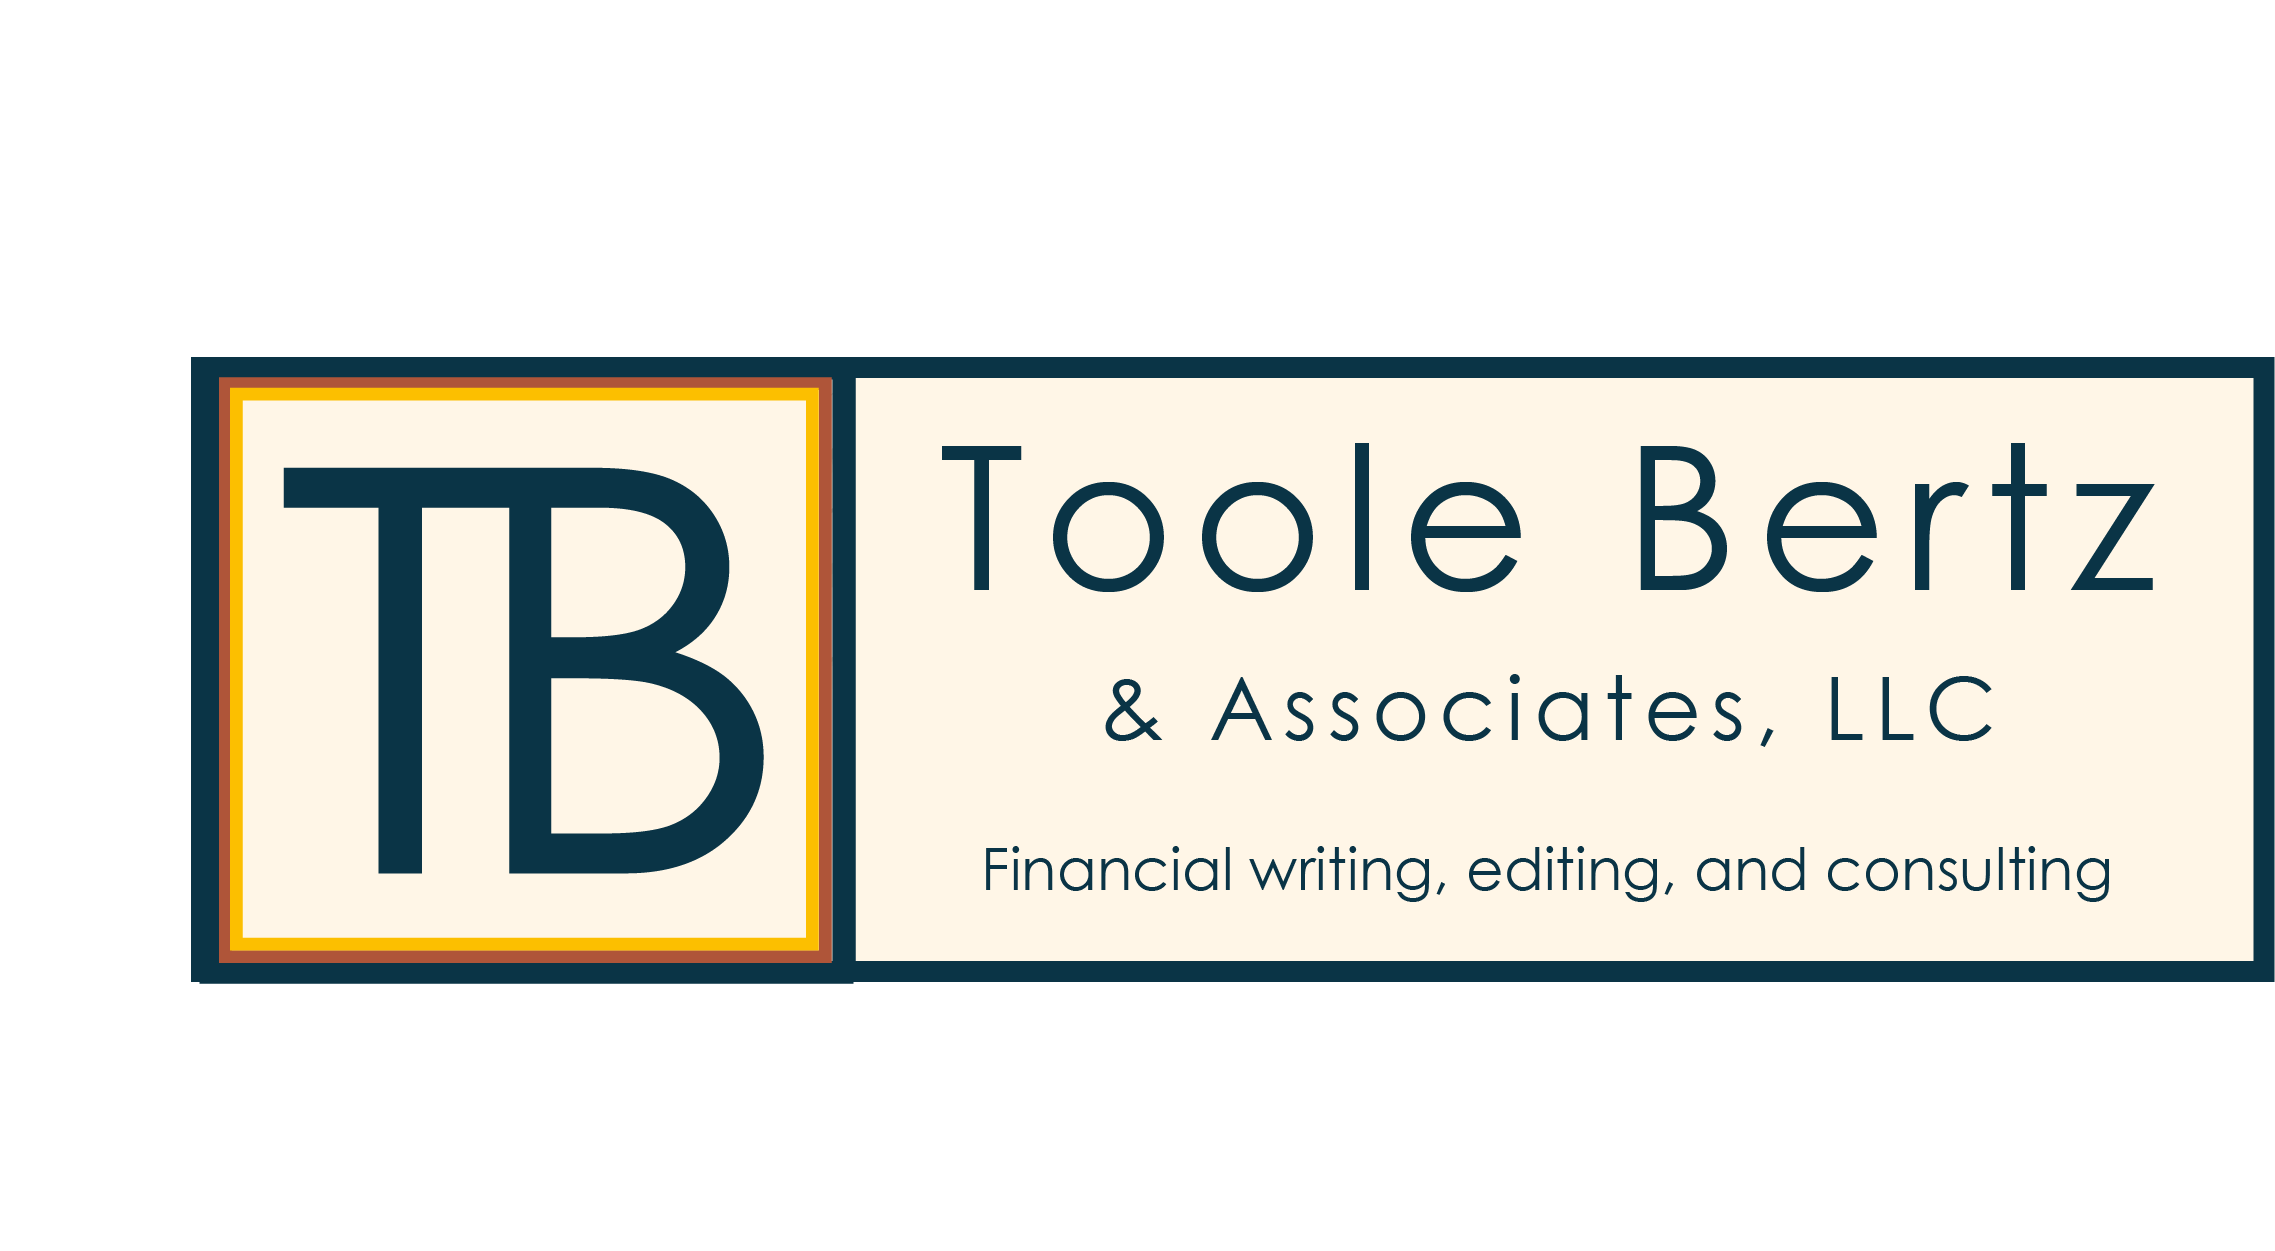 Toole Bertz & Associates, LLC